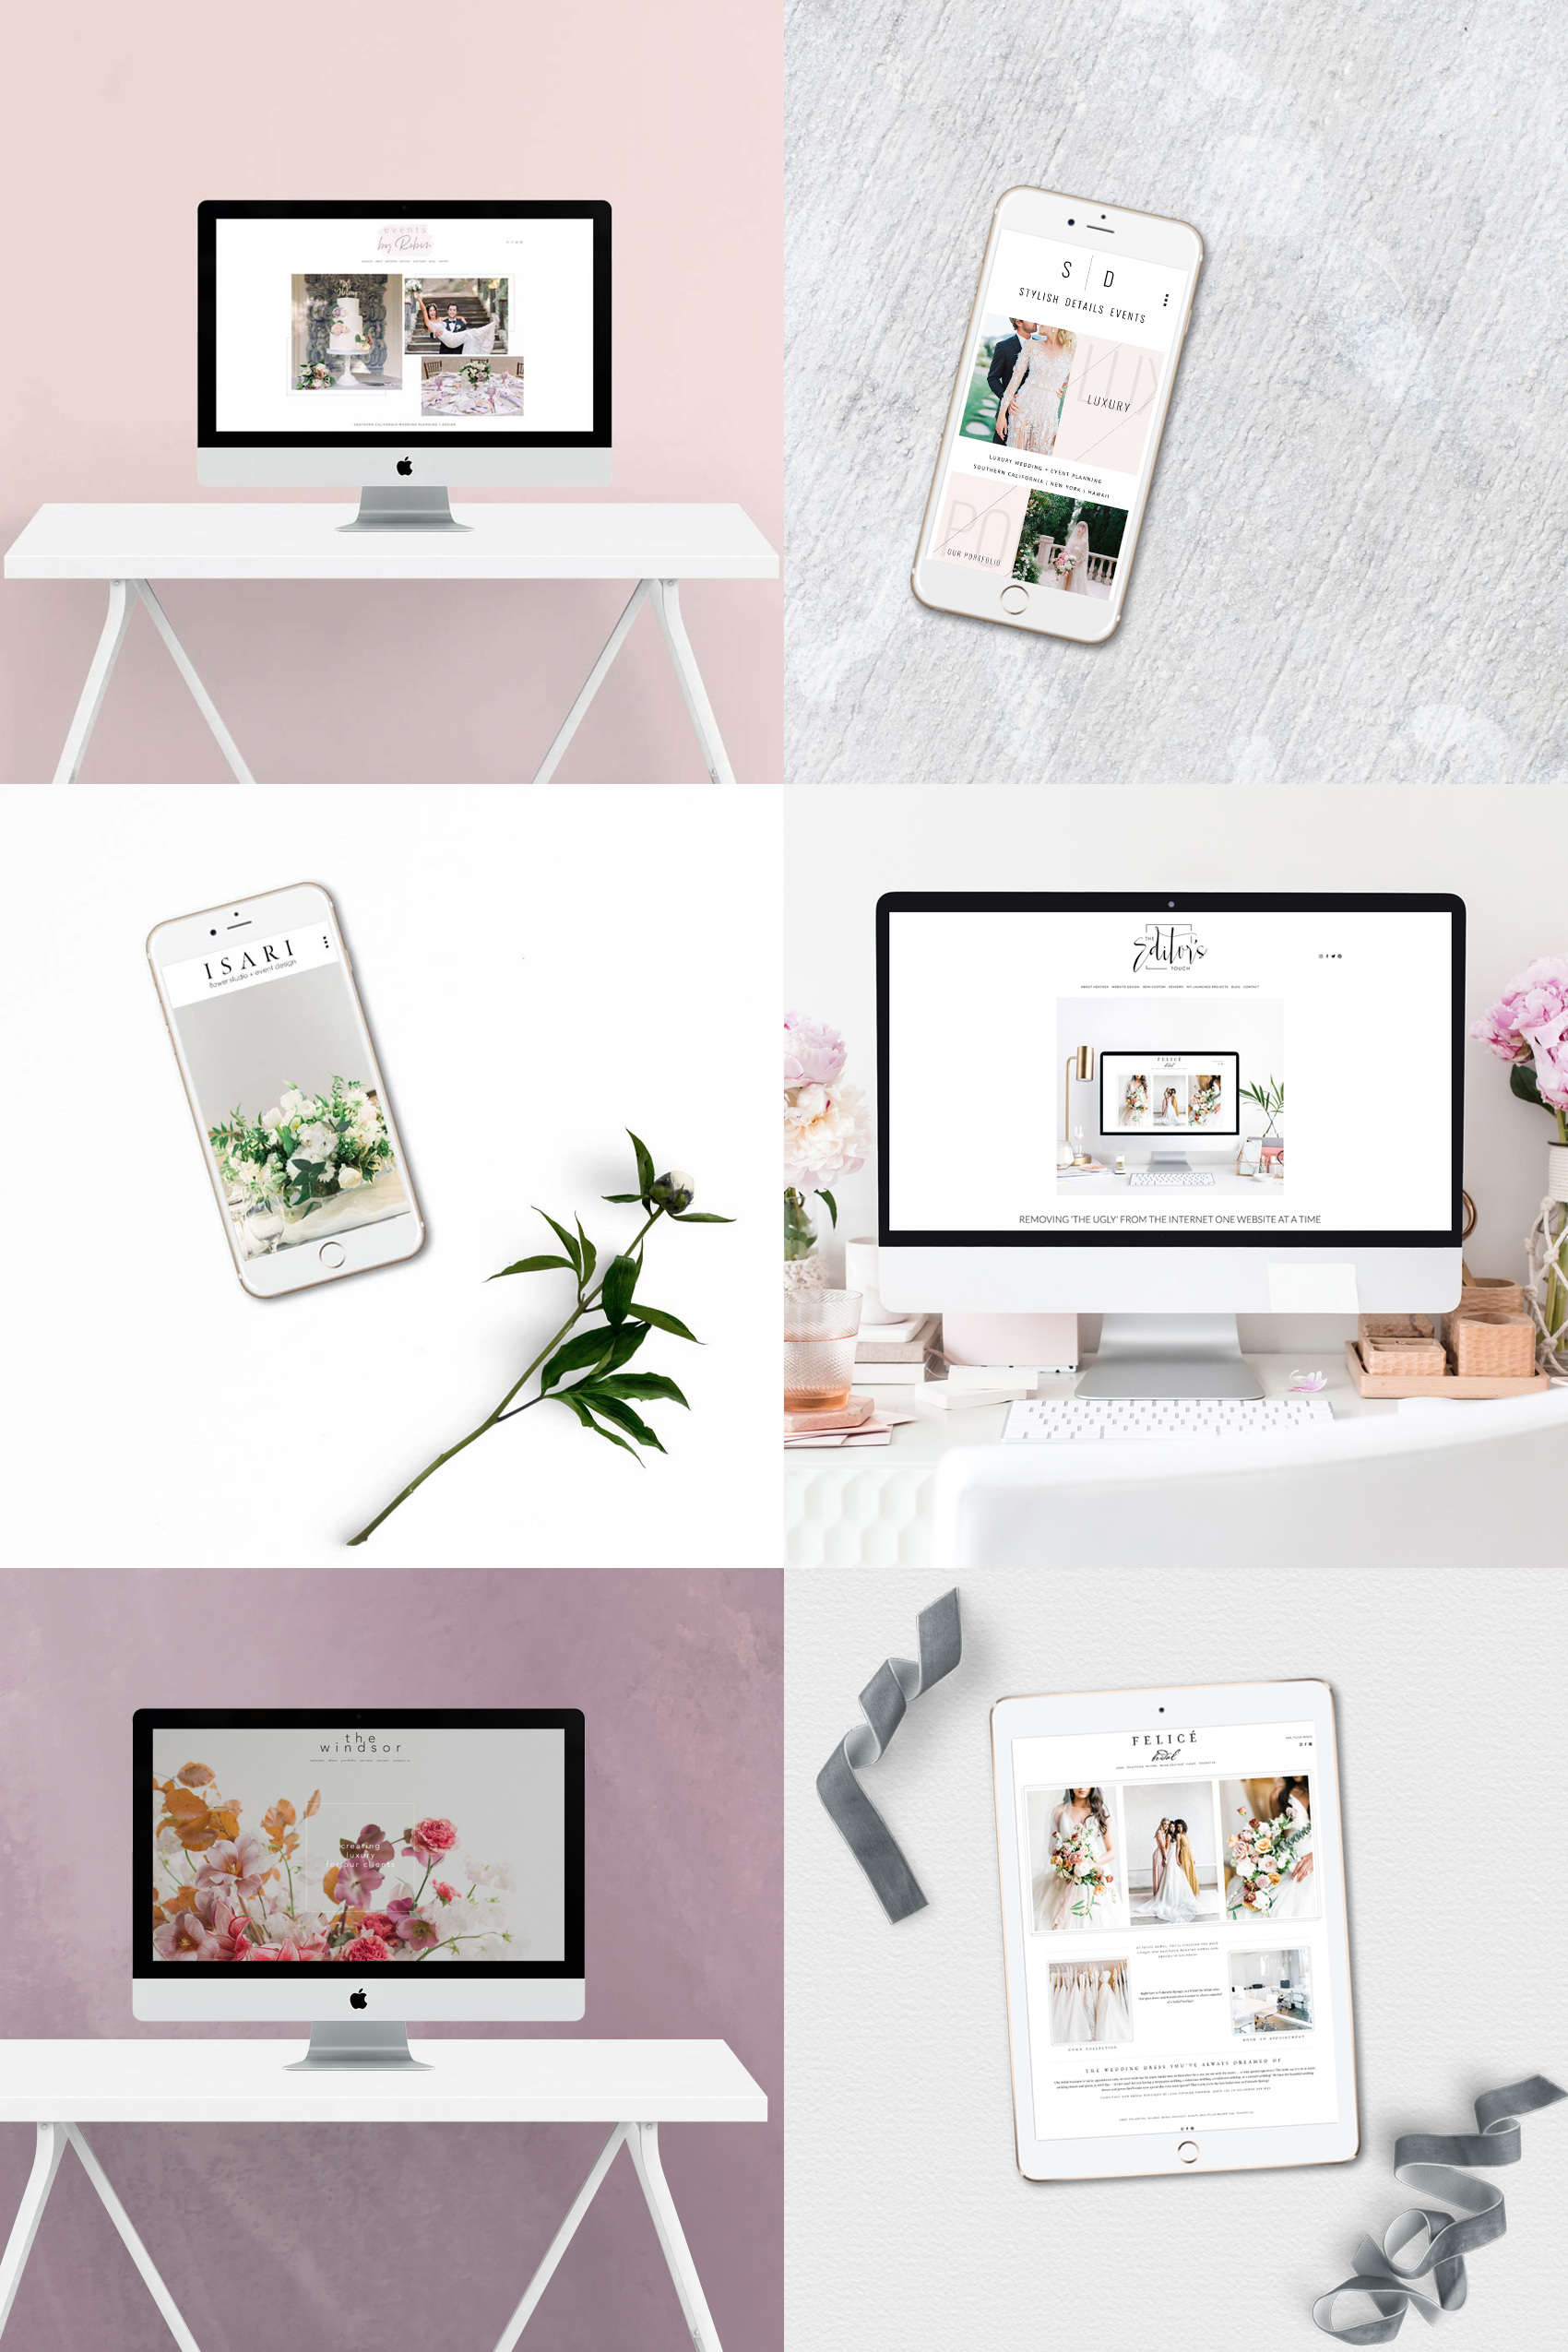 Squarespace Website Designer for Creative Professionals and Wedding Industry Business Owners | The Editor's Touch